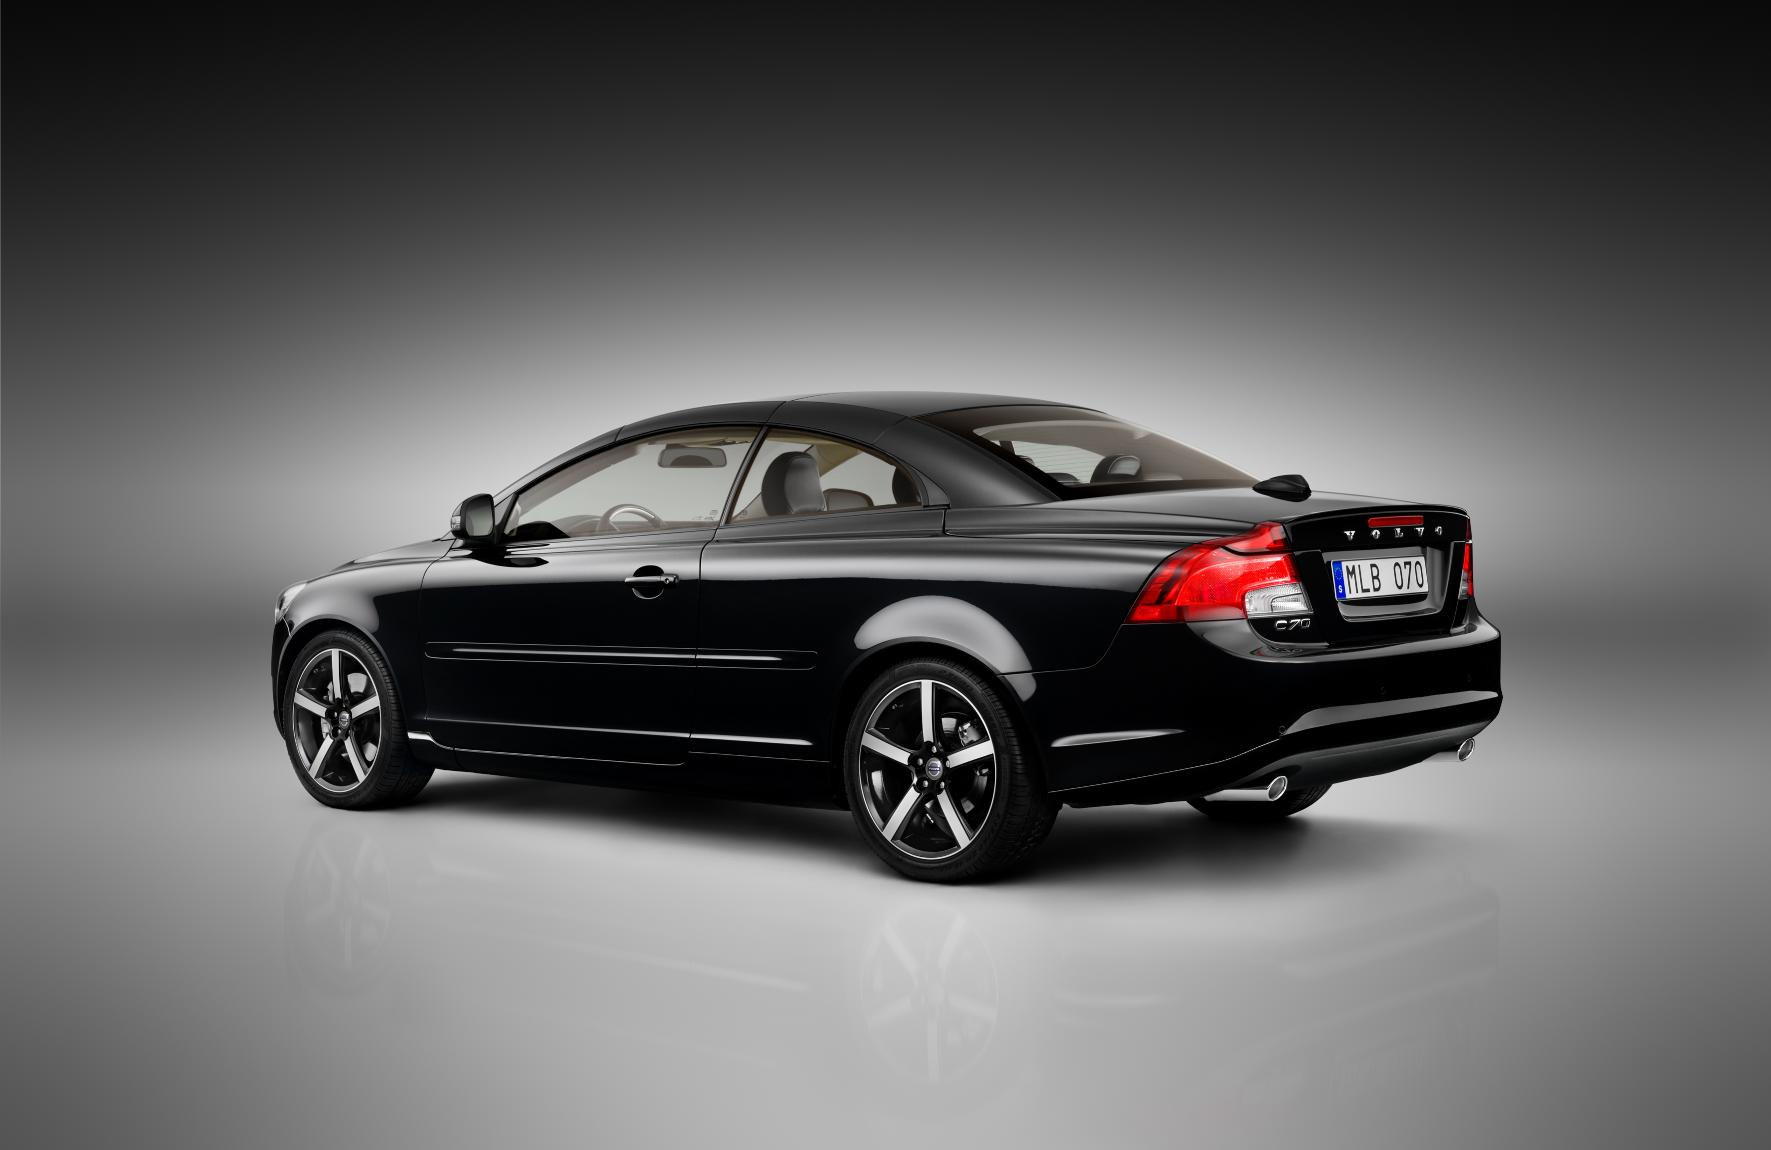 Volvo C70 Inscription 3